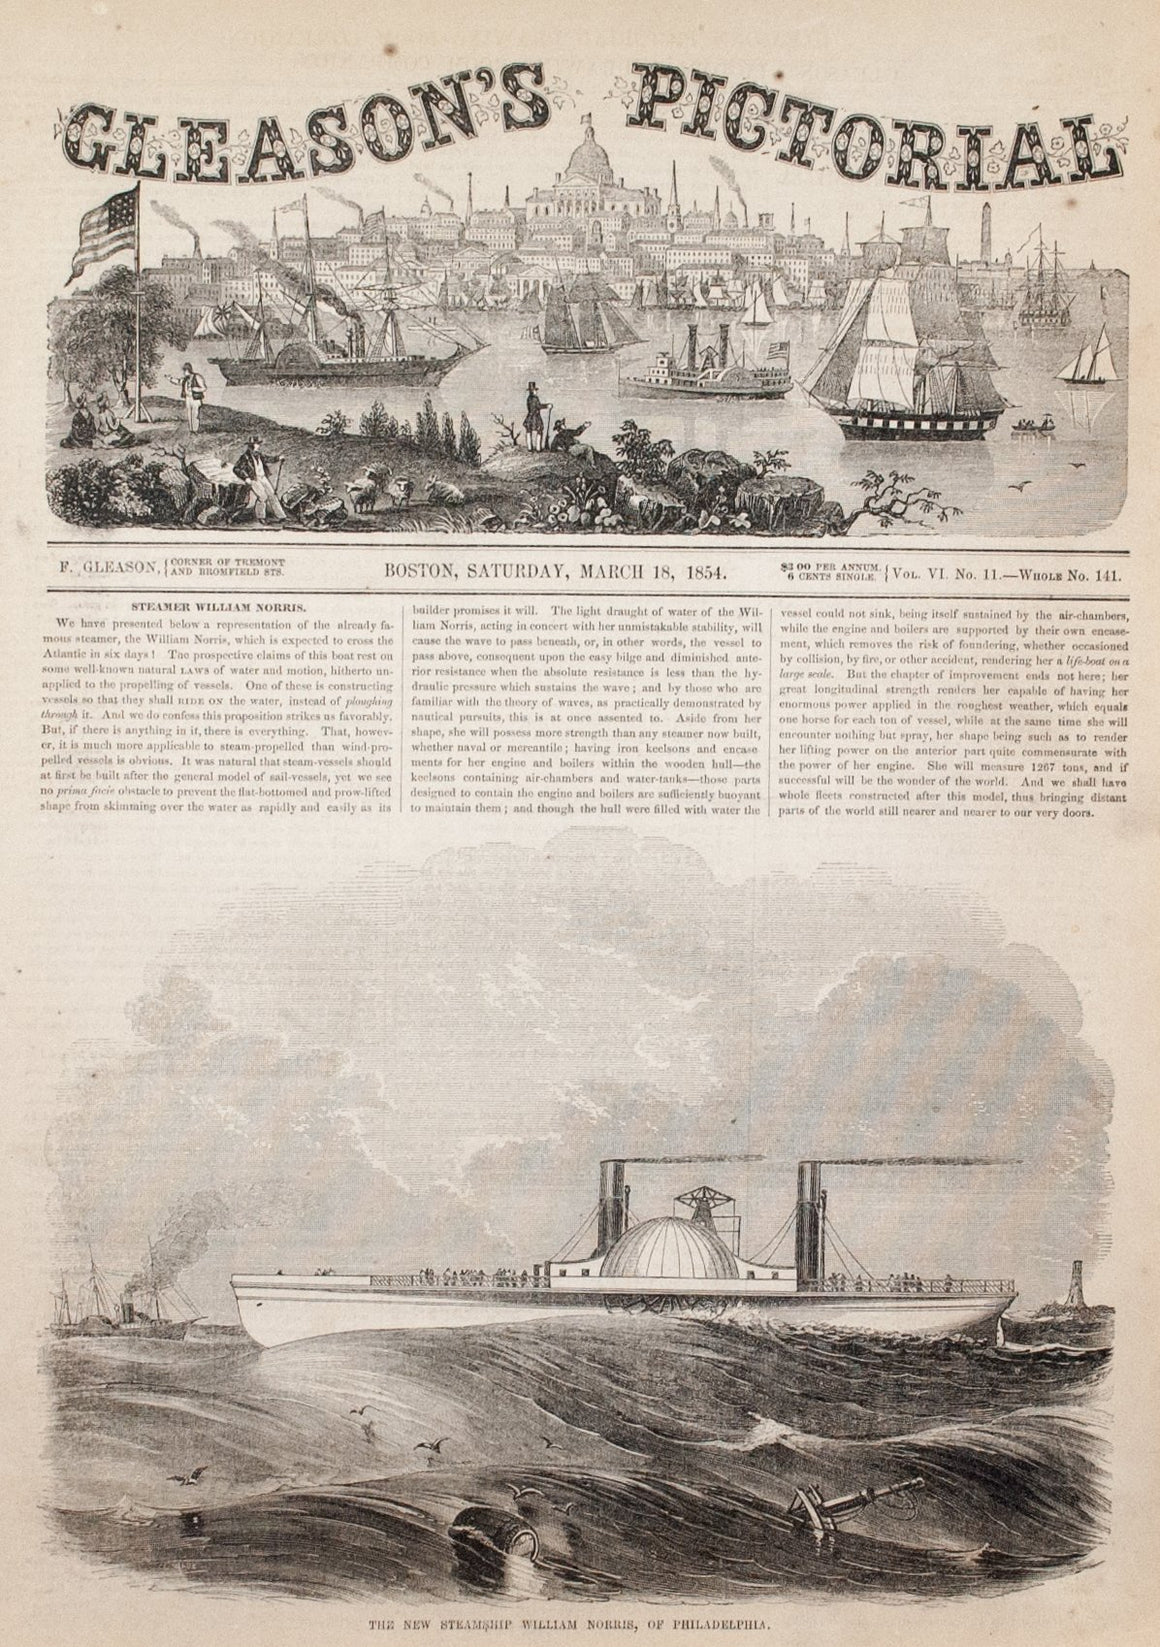 1854 Steamship William Norris - Gleason